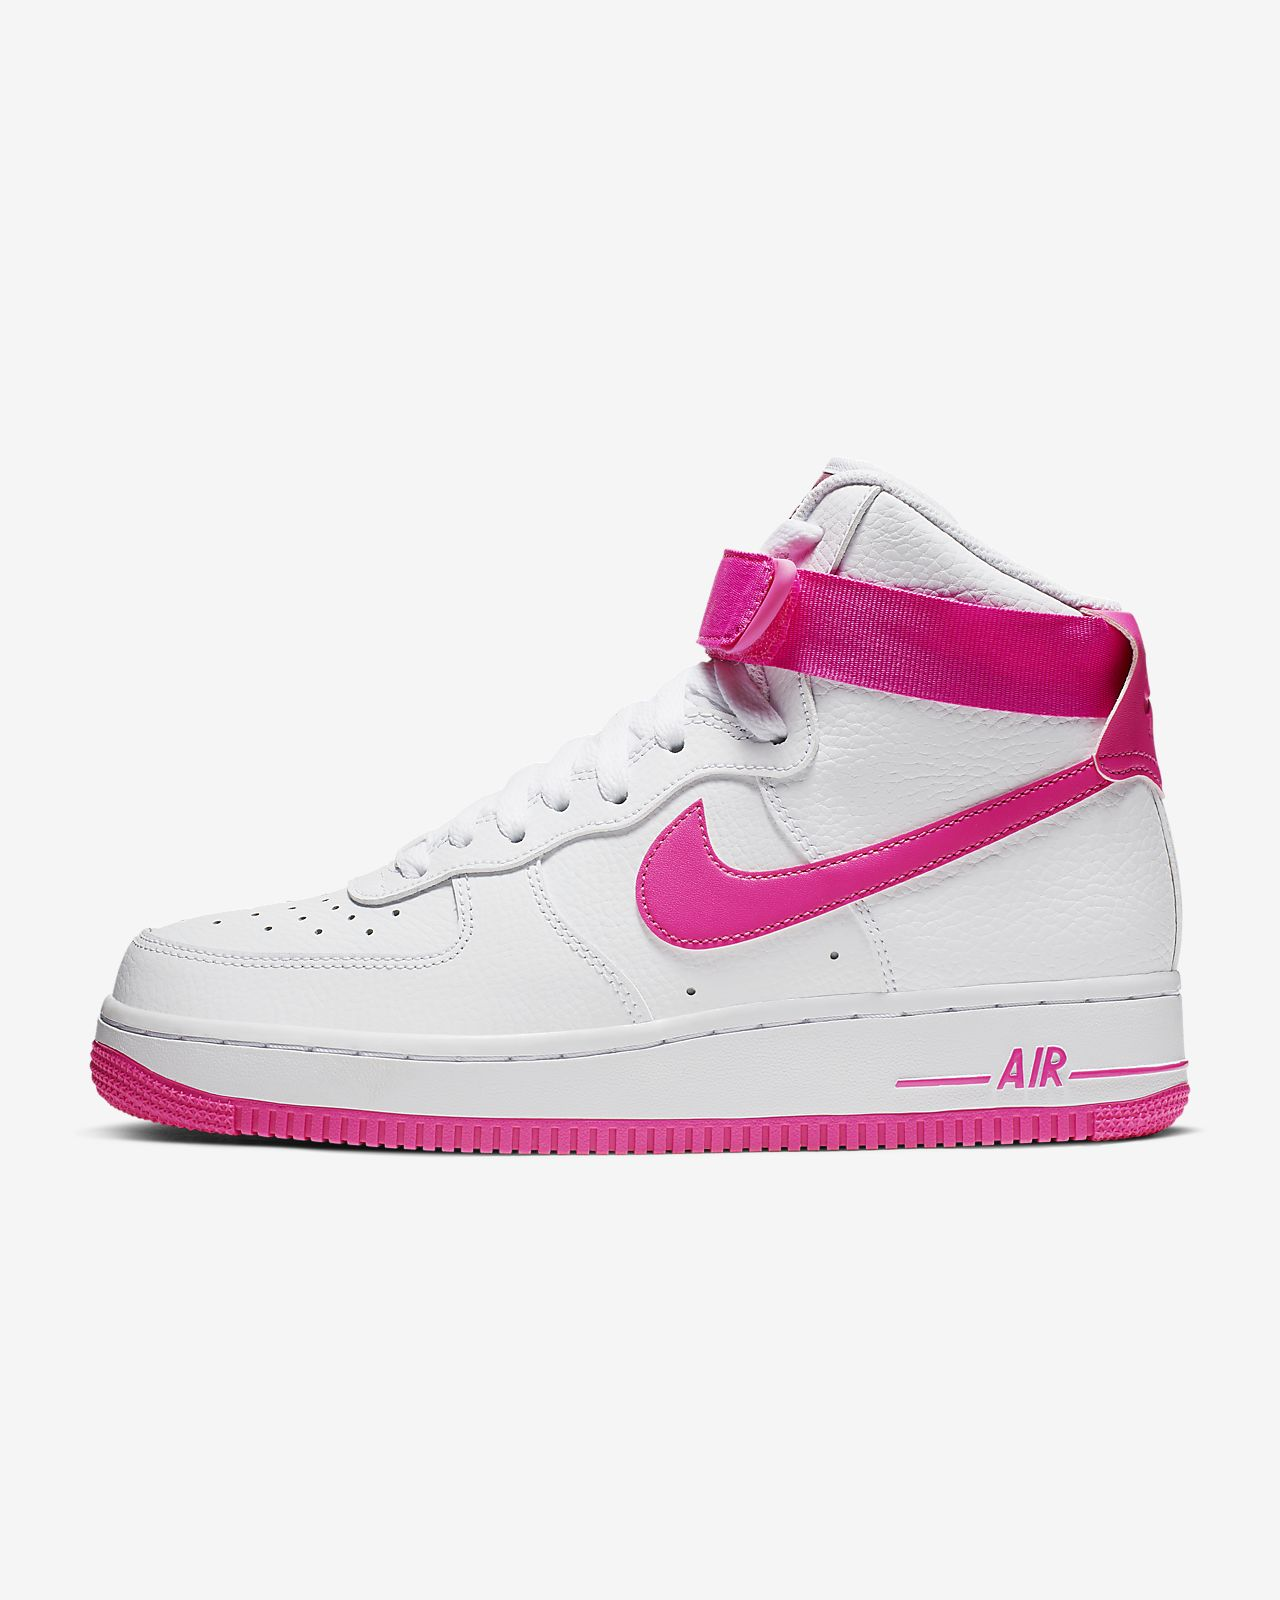 watch bb02c 7c09f Nike Air Force 1 High 08 LE Women's Shoe